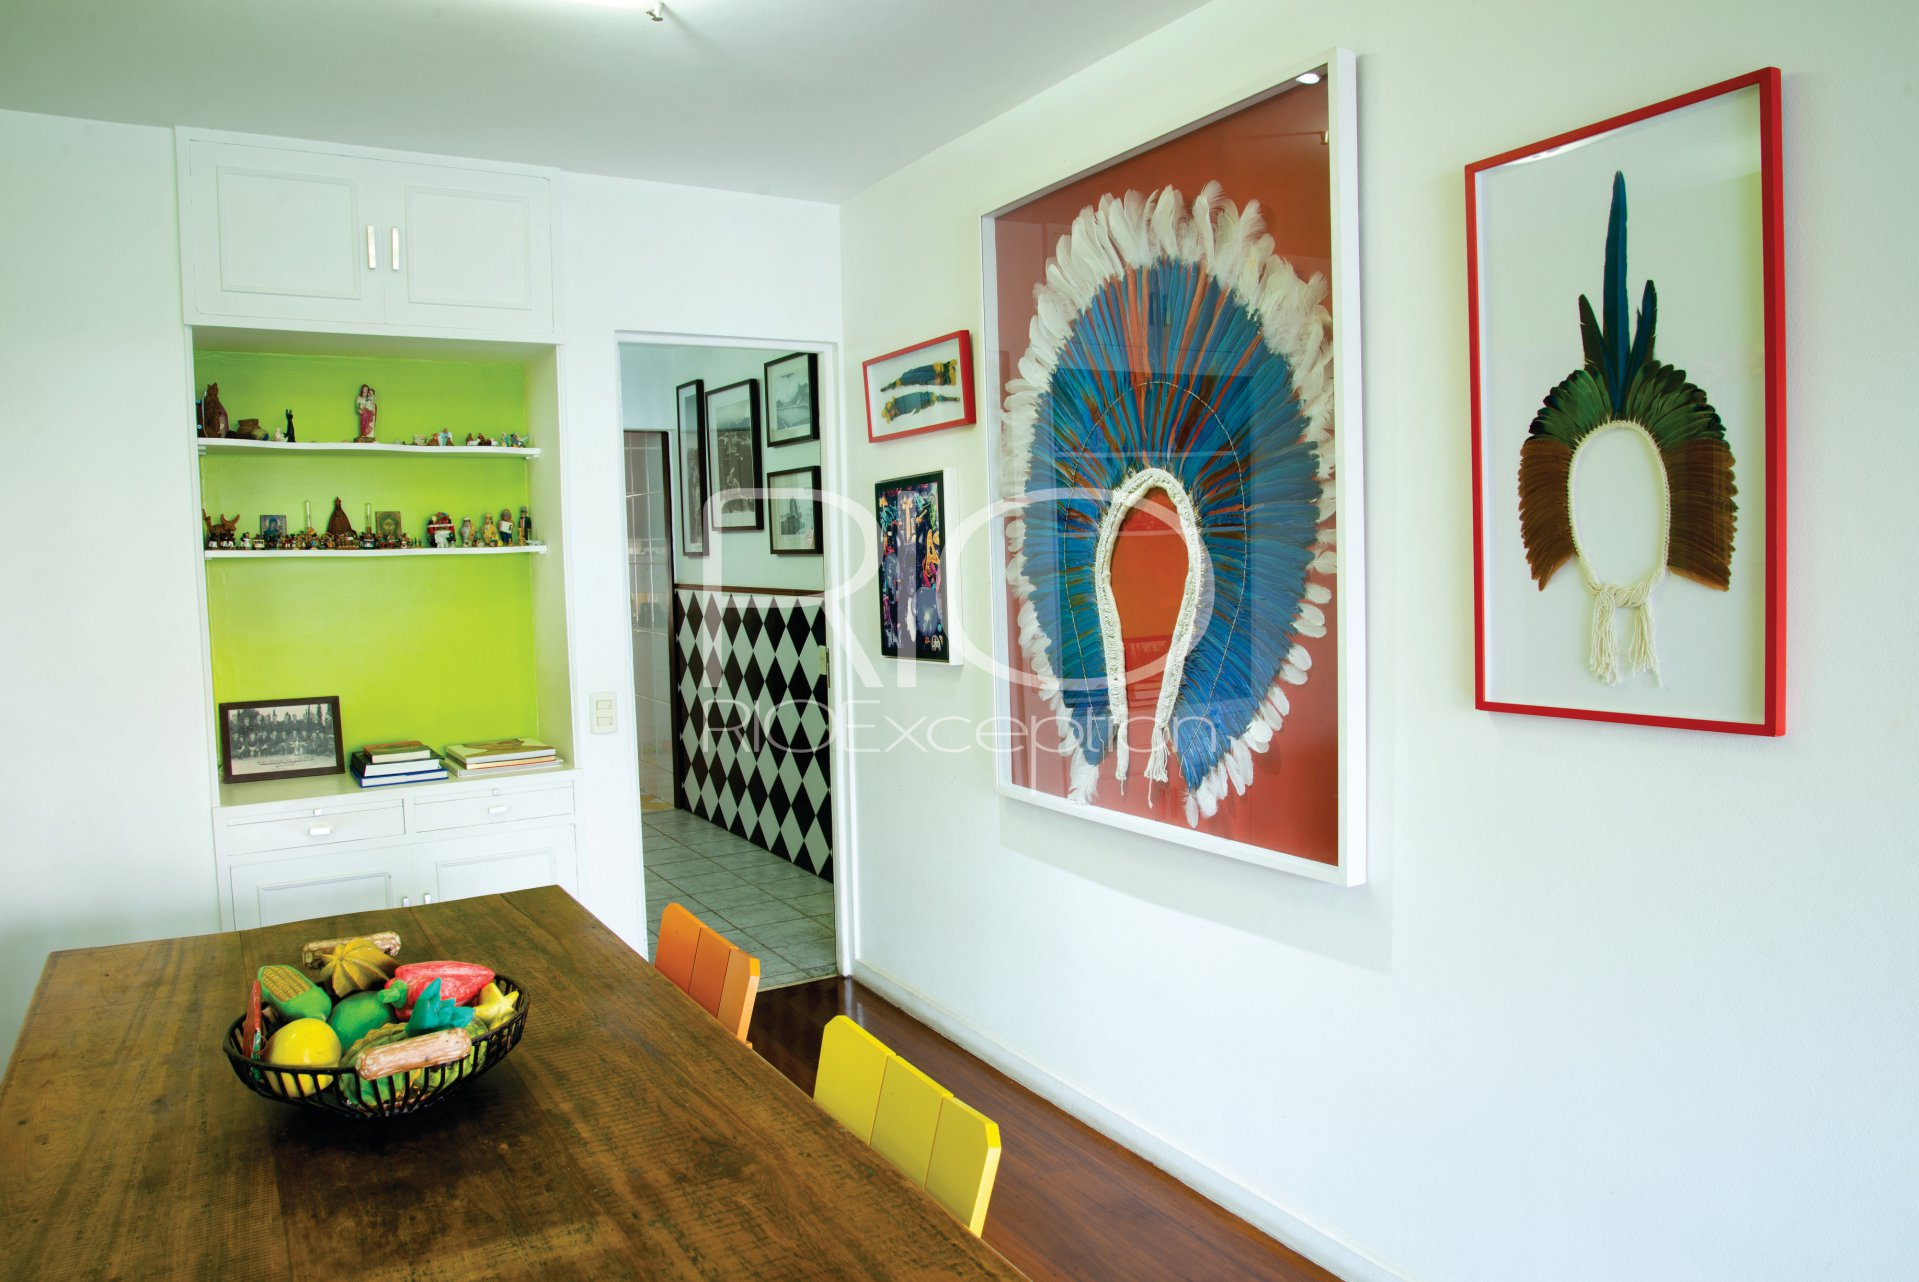 IPANEMA - Rua Redentor - 2 rooms